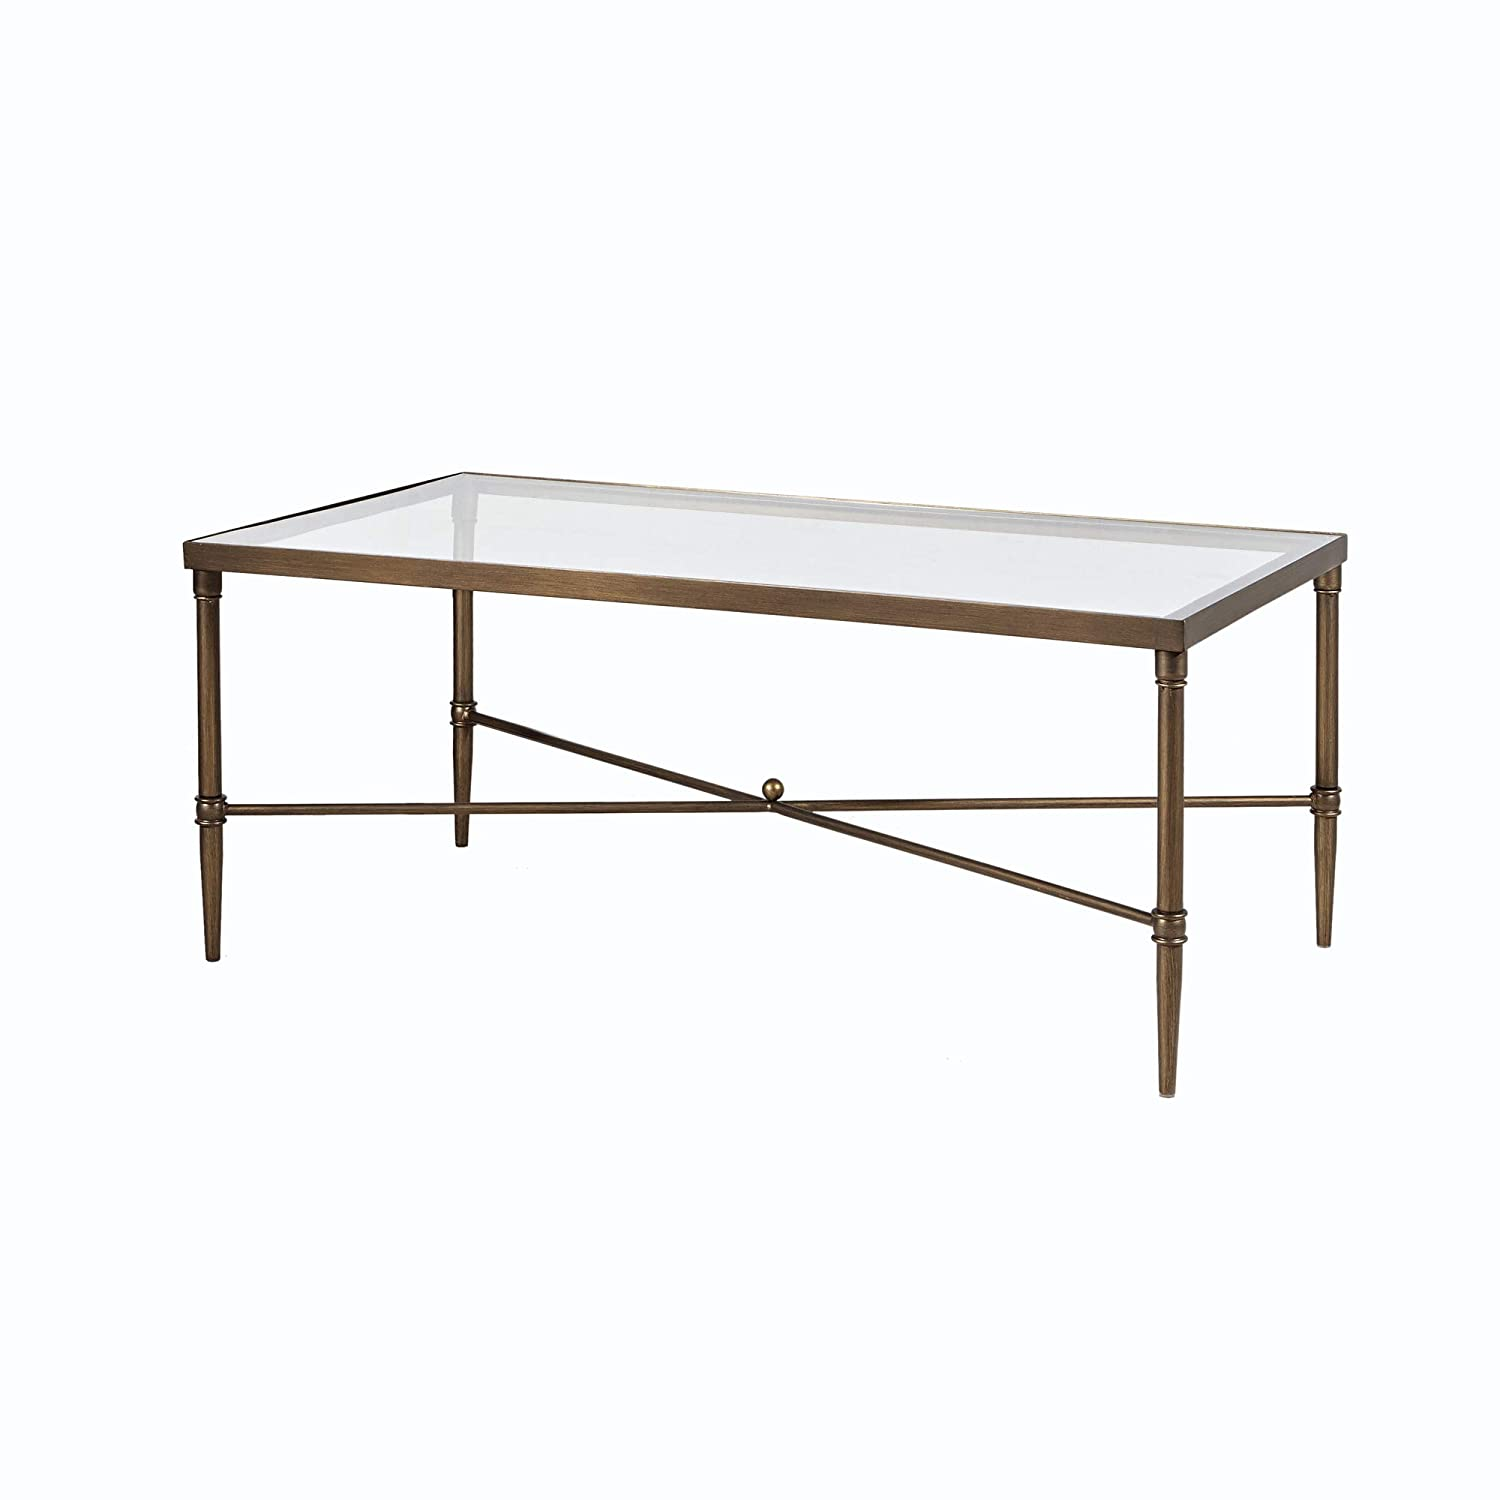 Genial MADISON PARK SIGNATURE MPS120 0050 Porter Accent Tables Rectangular  Tempered Glass Tabletop With Metal Frame Mid Century Modern Luxe Interior  Design Living ...